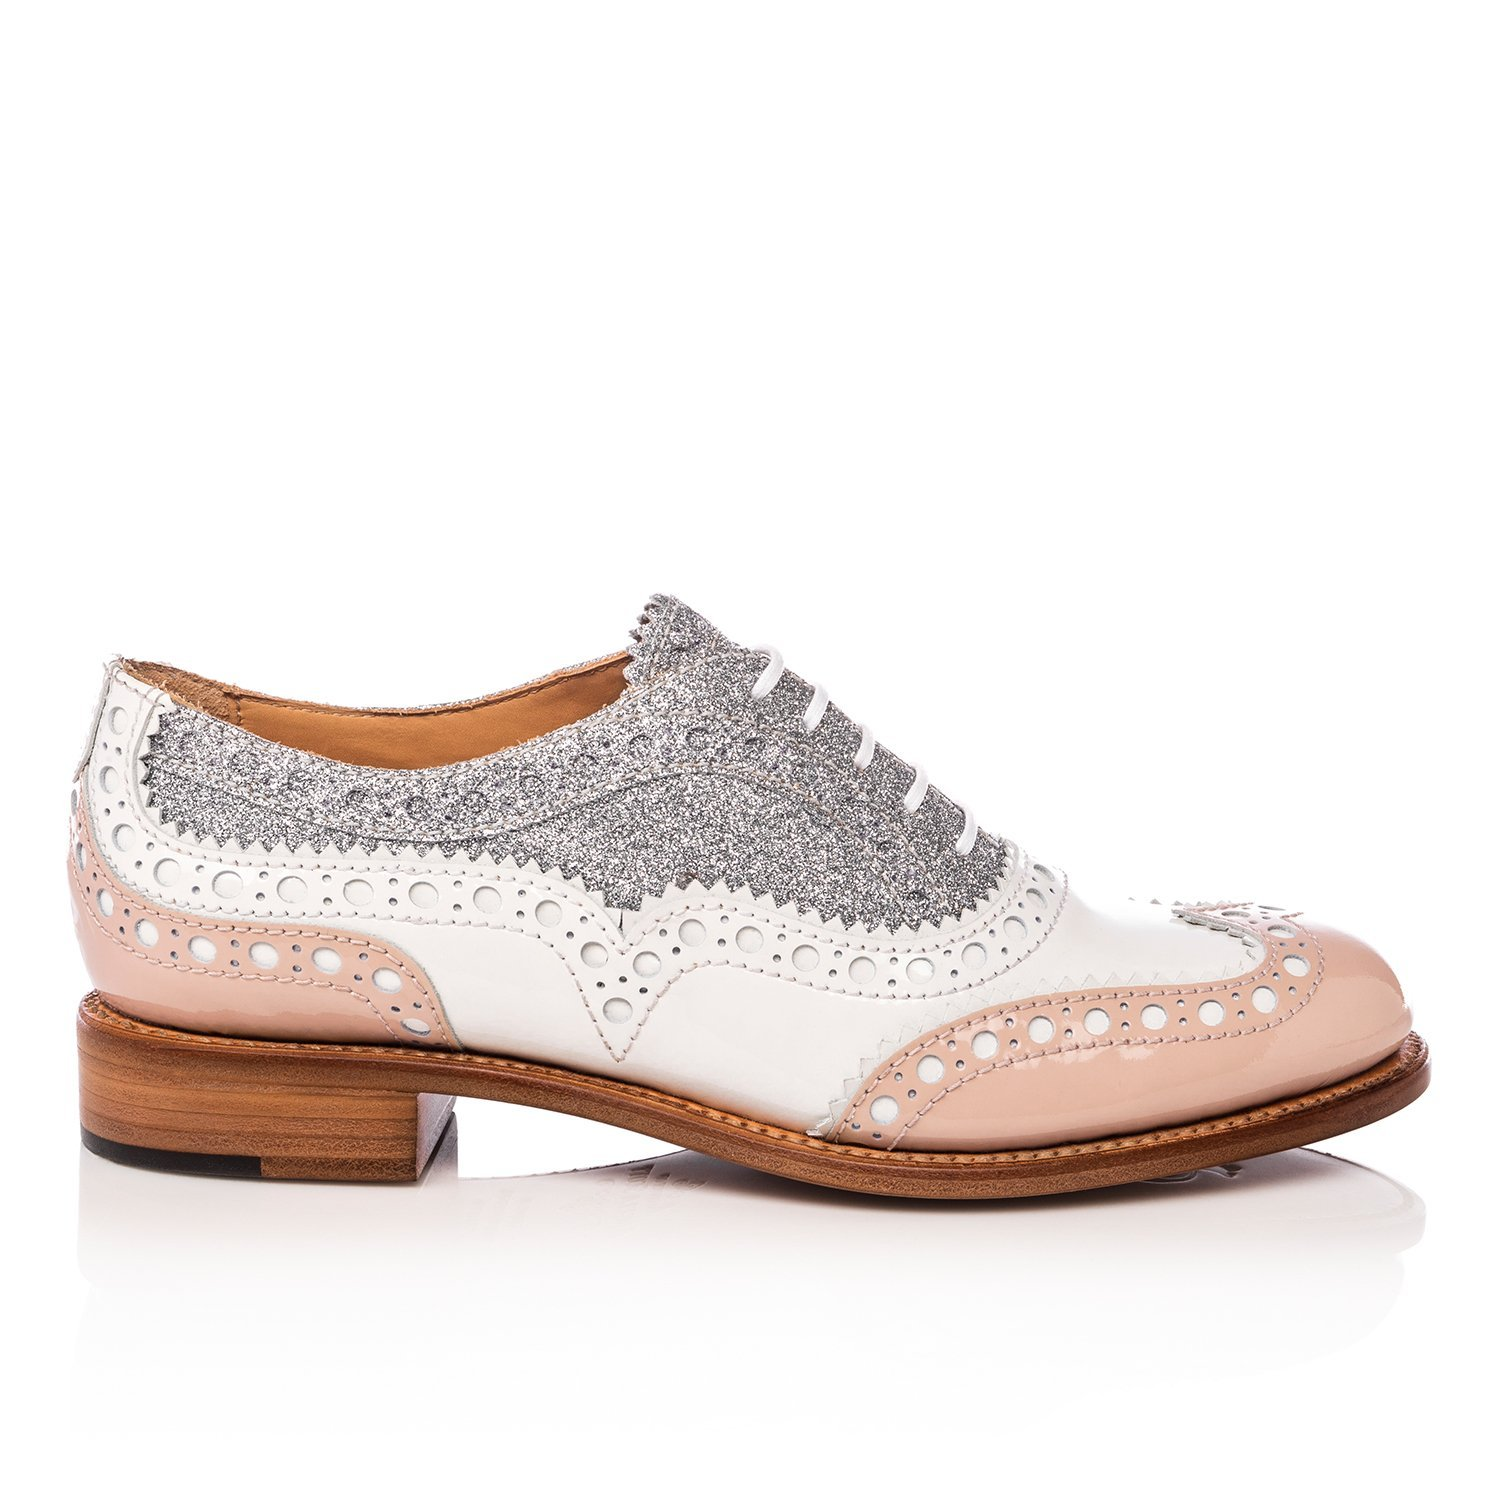 The Office Of Angela Scott Mr. Doubt Nude White & Silver Brogue Oxford by The Office Of Angela Scott